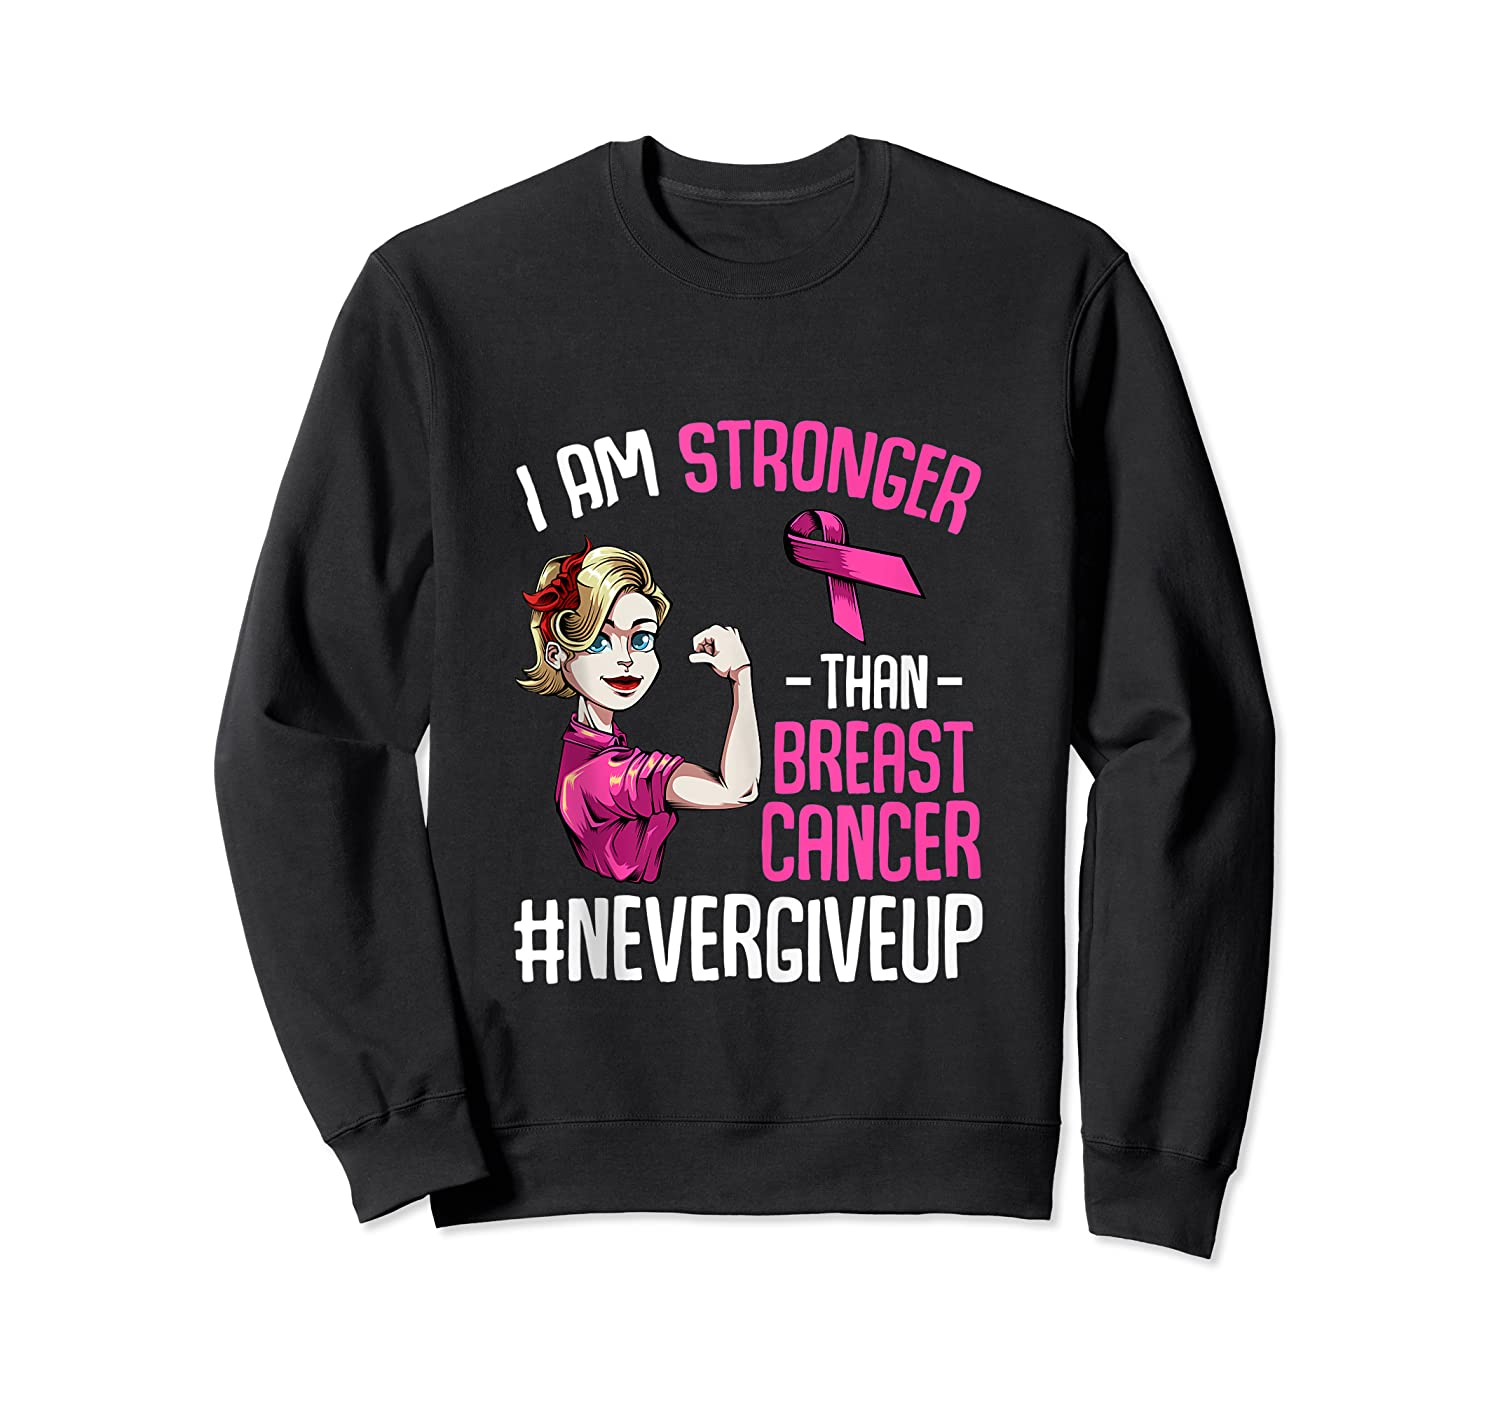 Breast Cancer Awareness Month Shirt For I Am Stronger Tank Top Crewneck Sweater